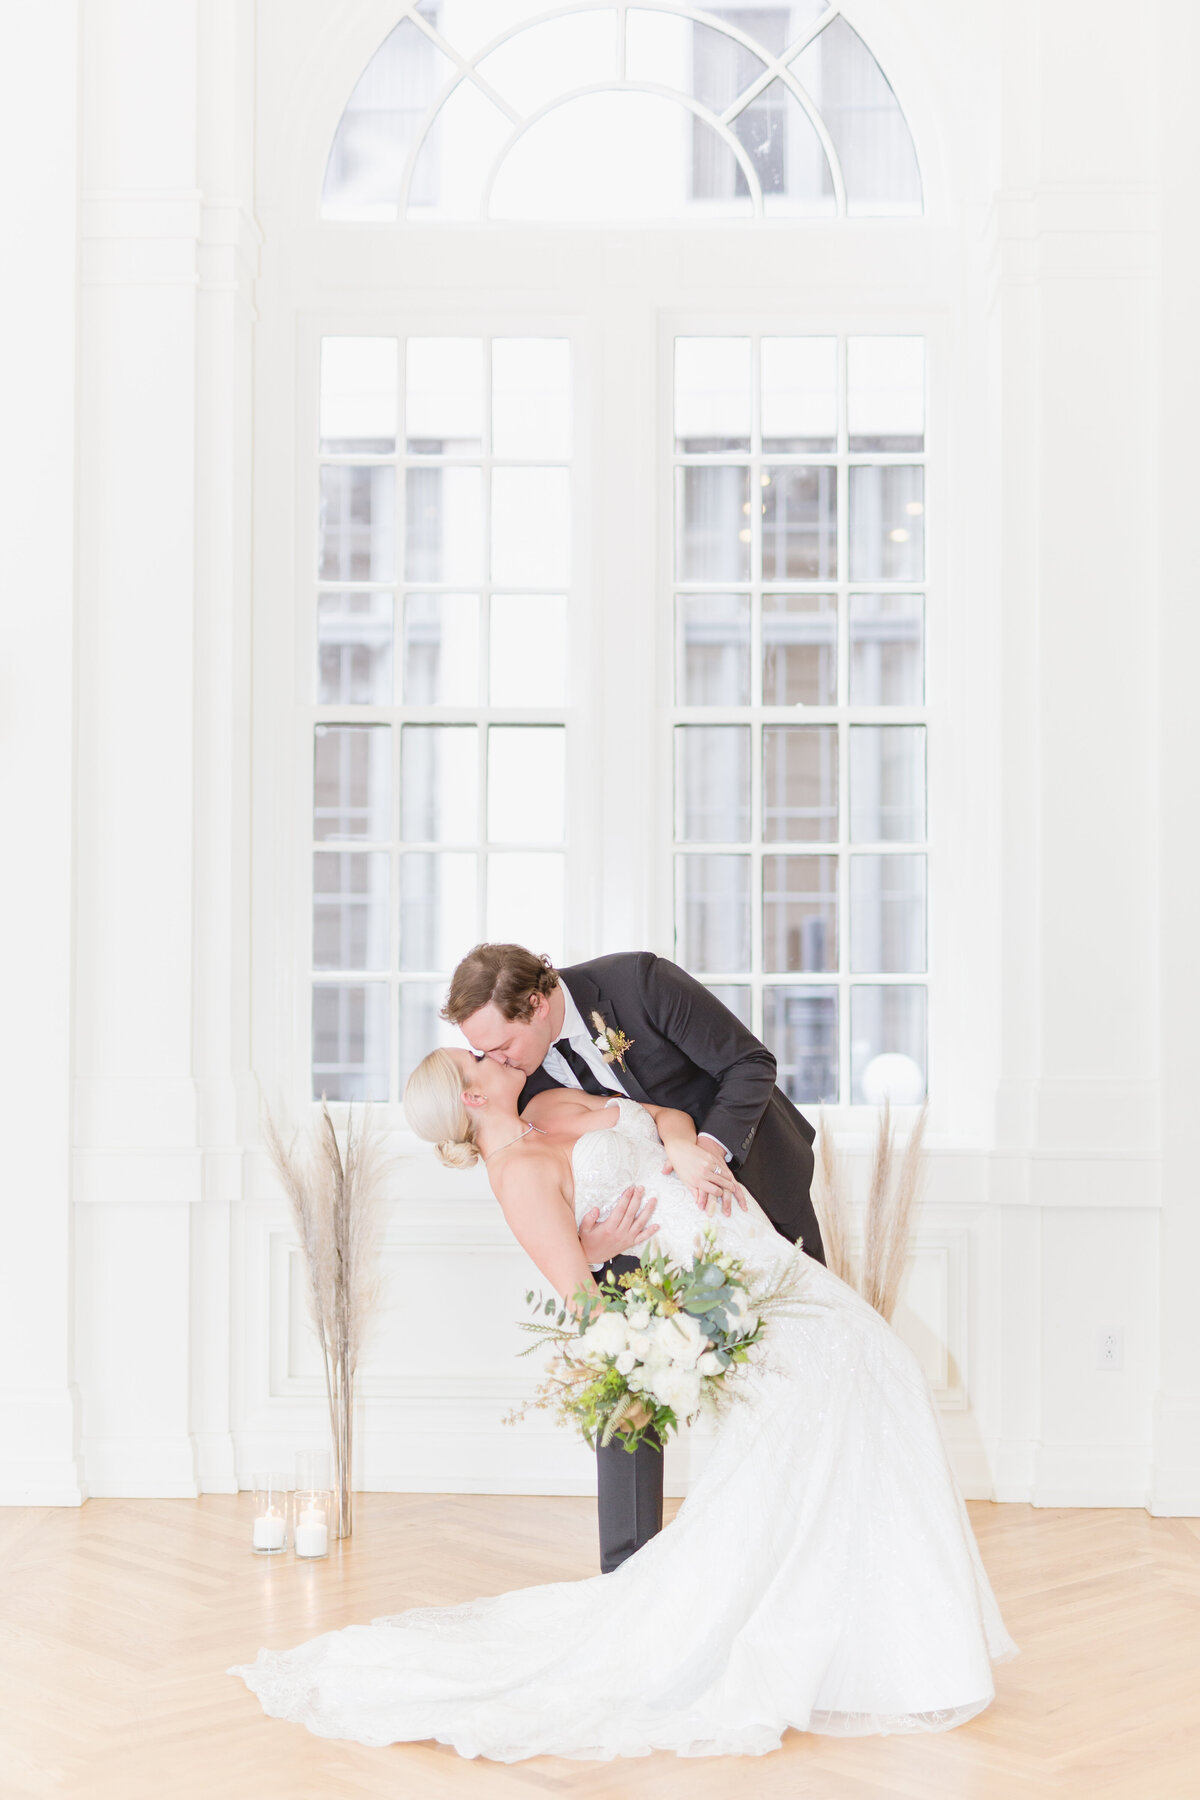 Kinspired_Nashville_StyledWeddingShoot-234